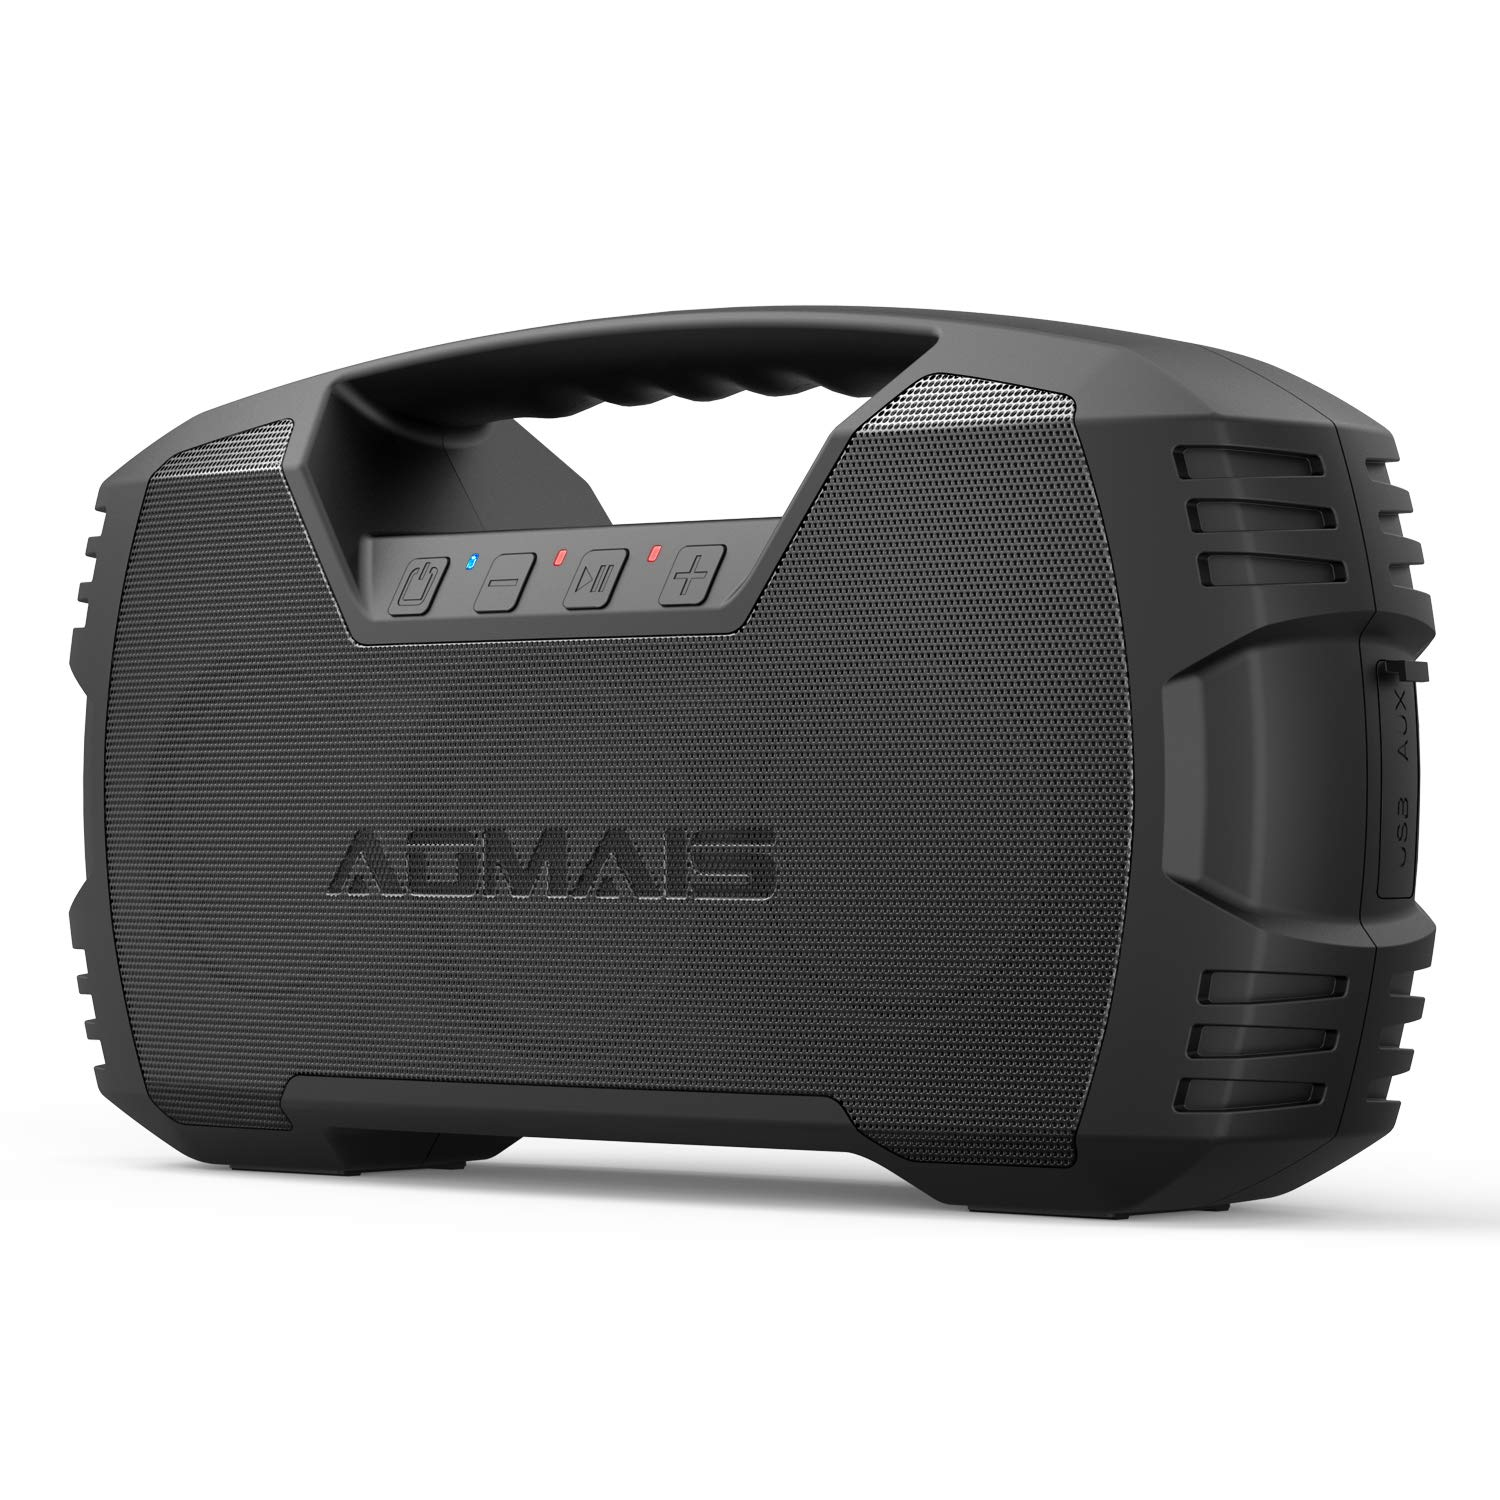 AOMAIS GO Bluetooth Speakers,Waterproof Portable Indoor/Outdoor 30W Wireless Stereo Pairing Booming Bass Speaker,30-Hour Playtime with 8800mAh Power Bank,Durable for Home Party,Camping(Black) by AOMAIS